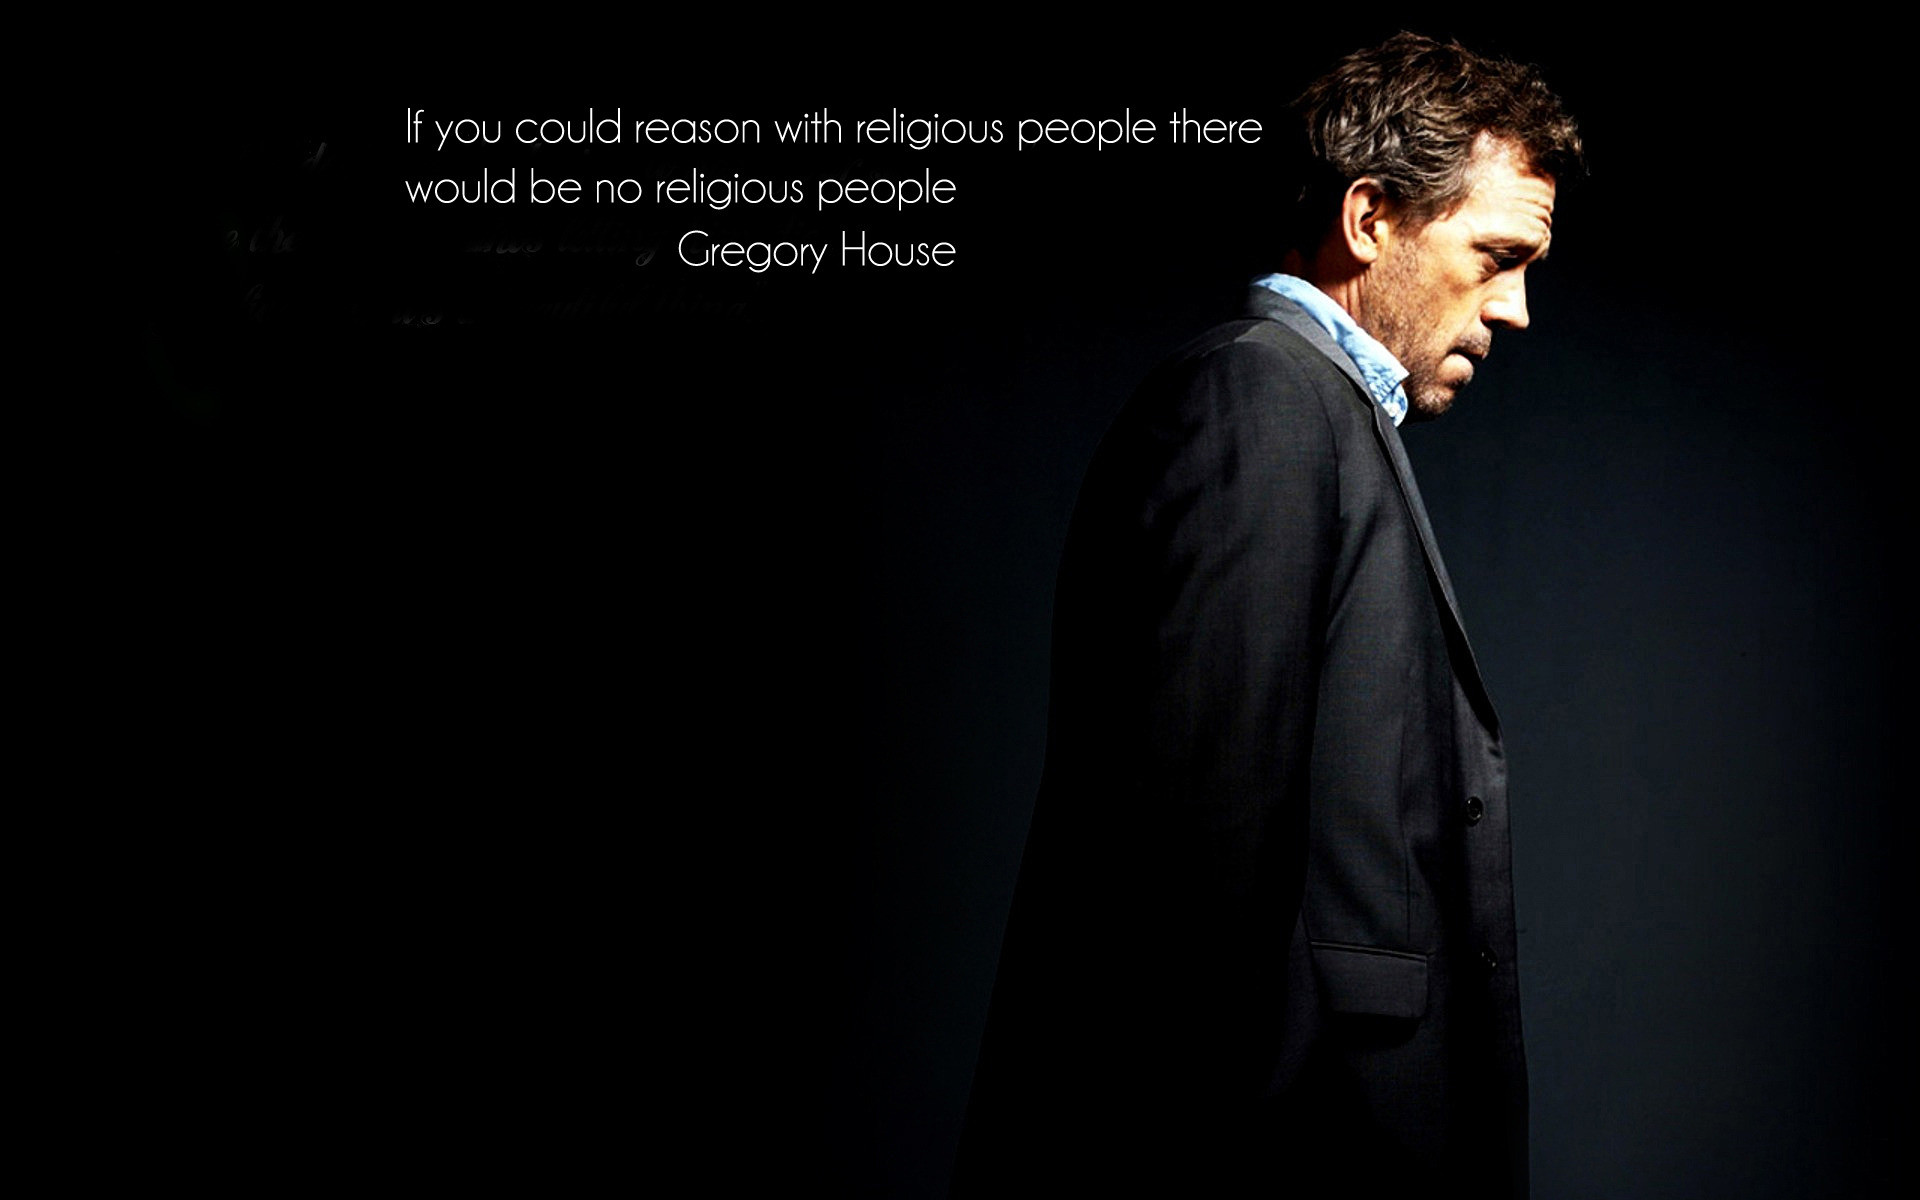 Dr House Wallpapers Dr House Wallpapers – Full HD wallpaper search